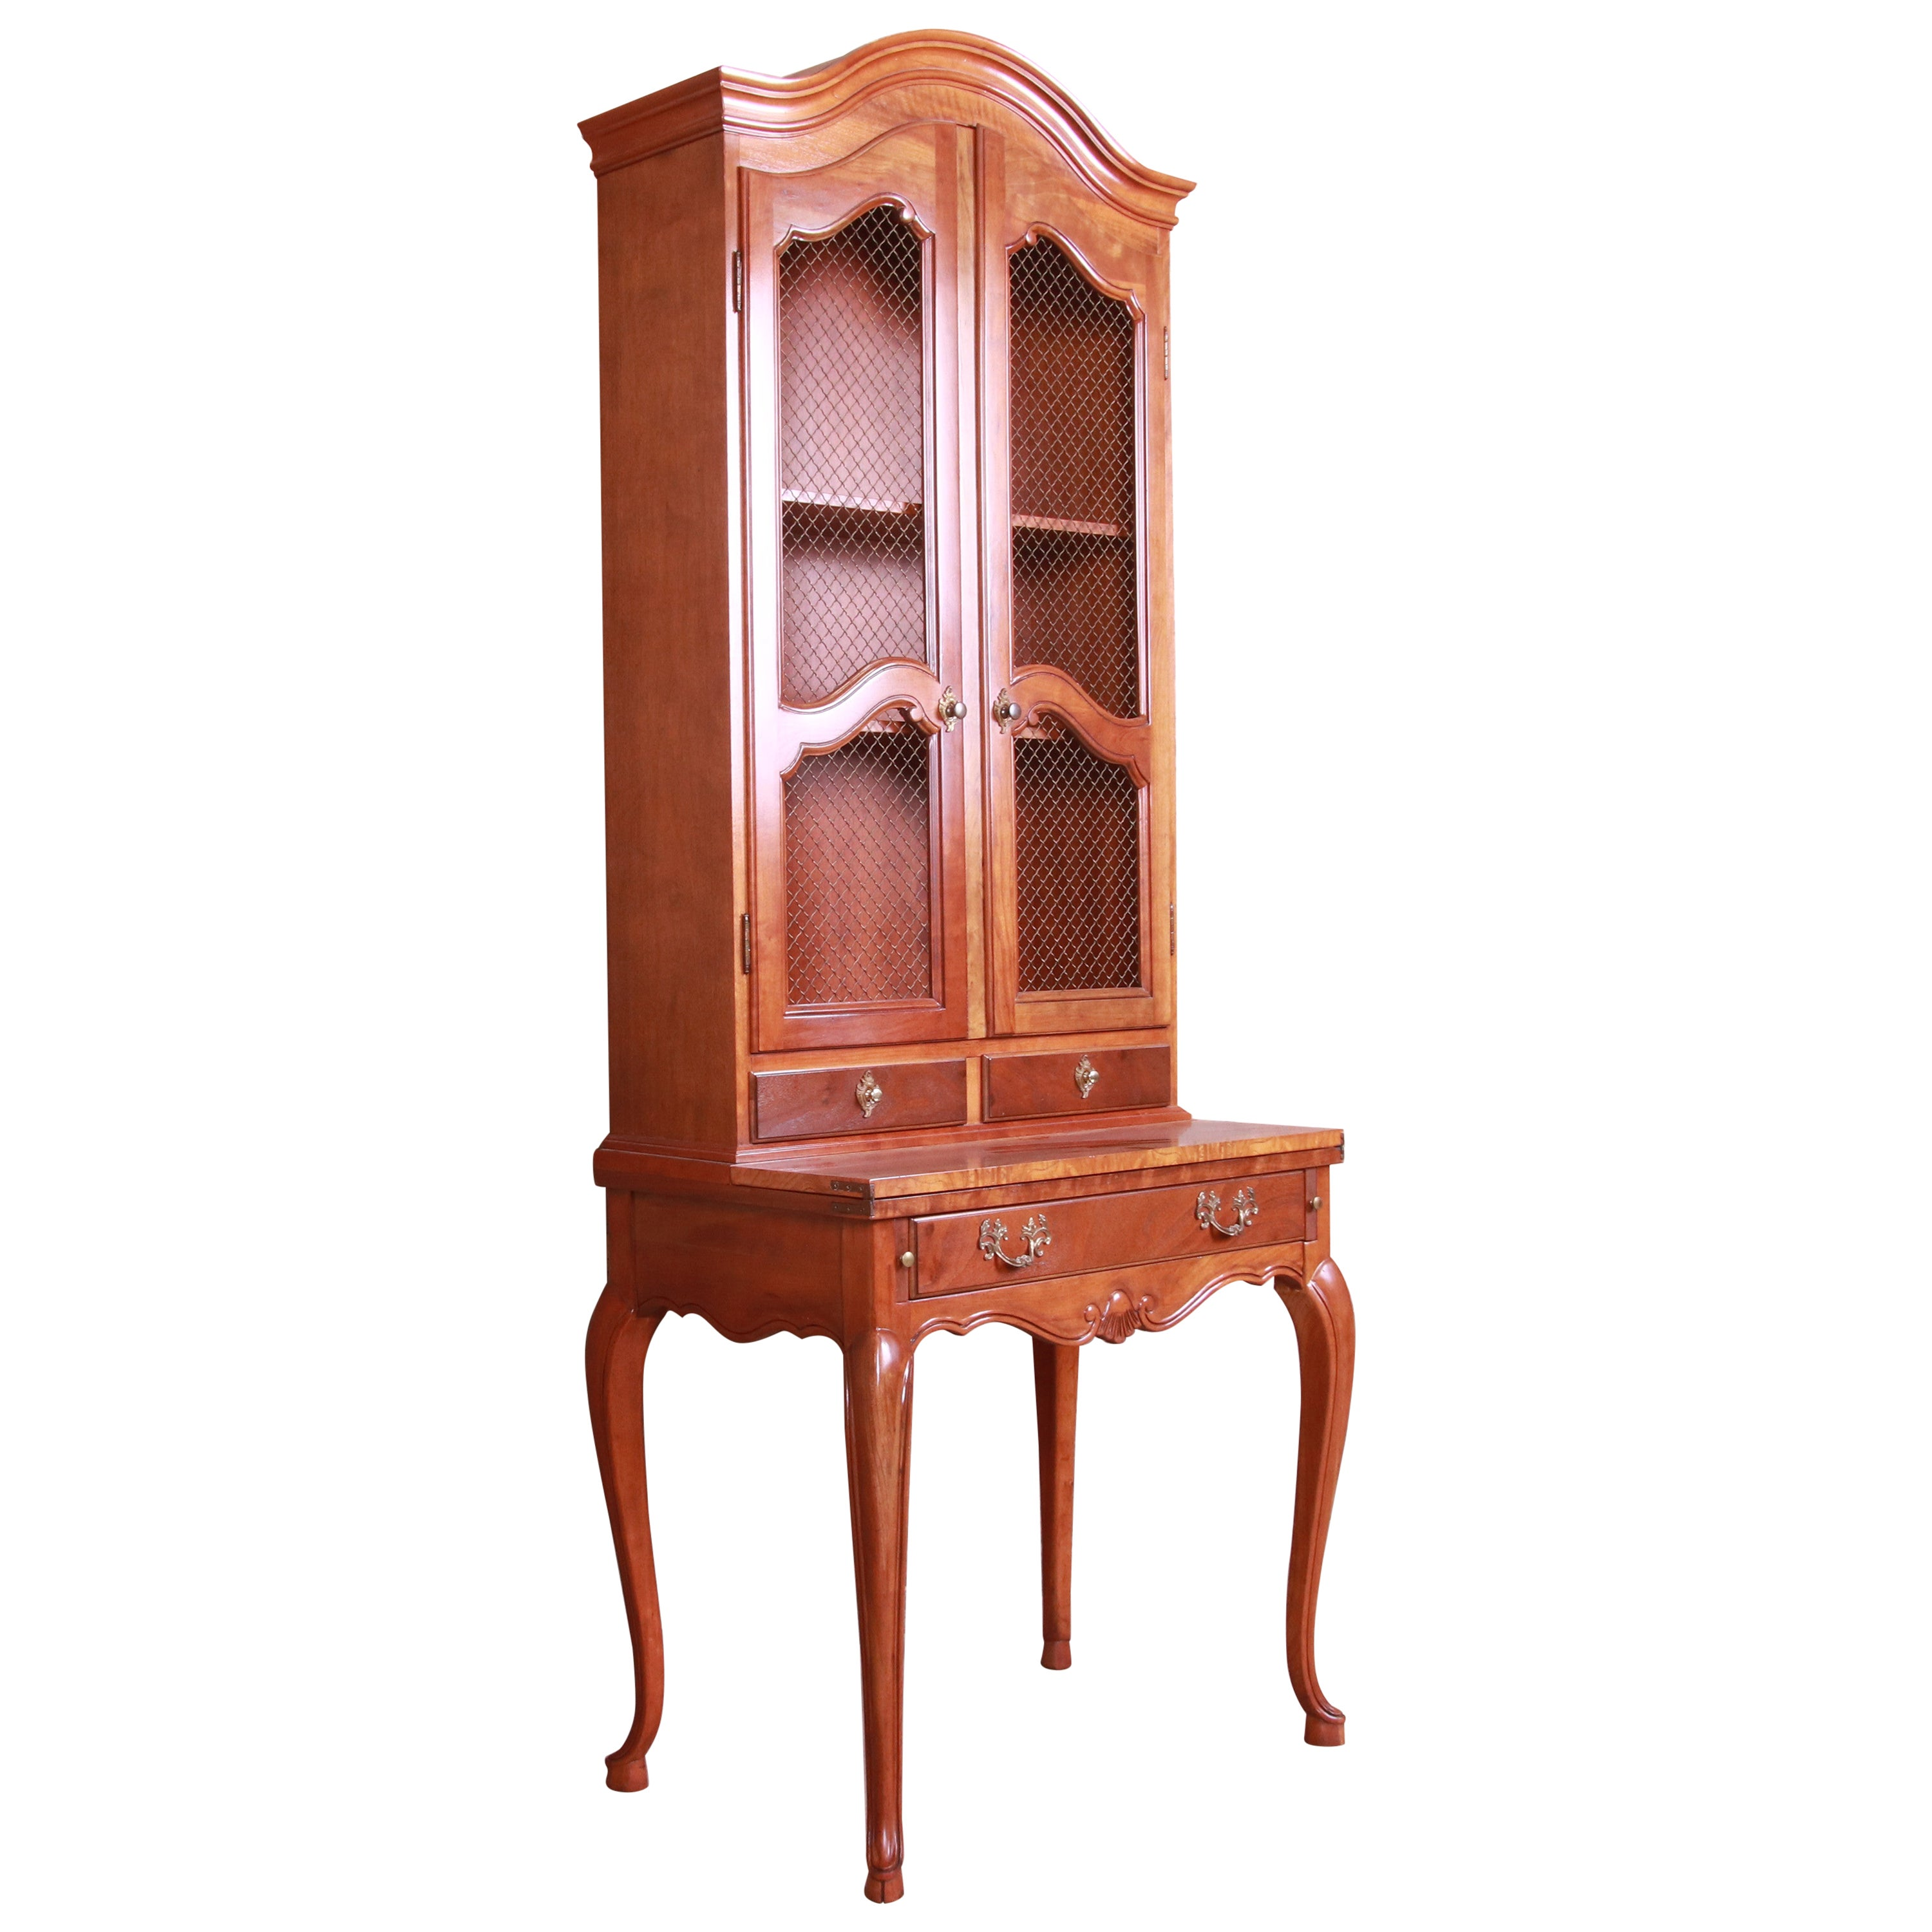 Baker Furniture French Provincial Cherrywood Secretary Desk with Bookcase Hutch